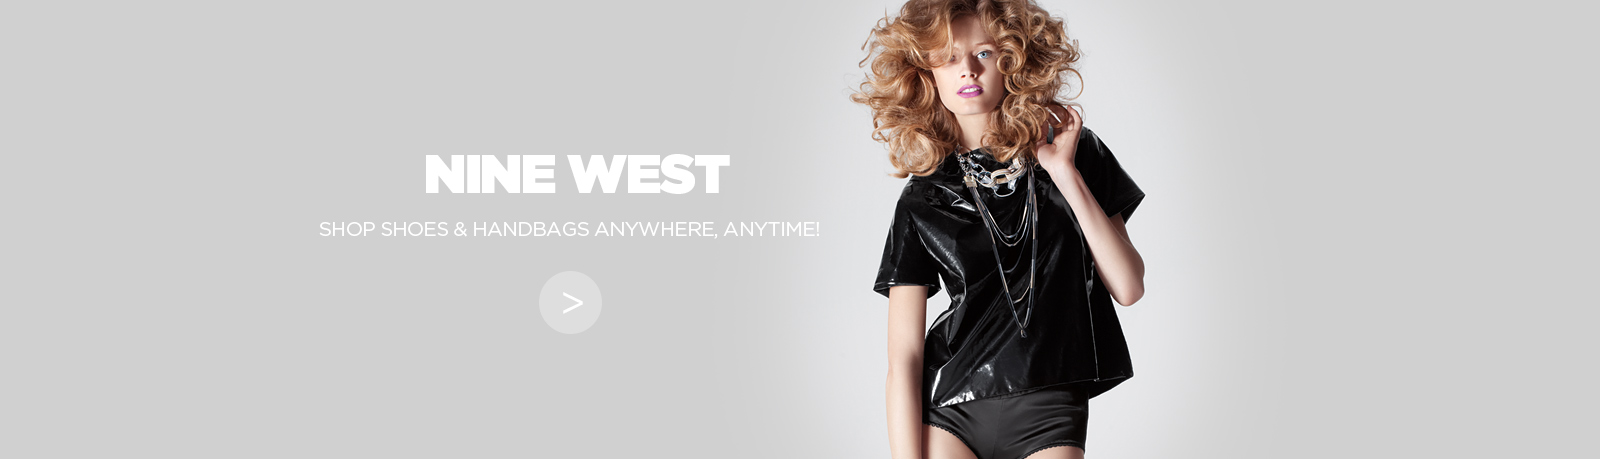 Nine West e-commerce website and mobile site built by NOW Solutions Digital Agency